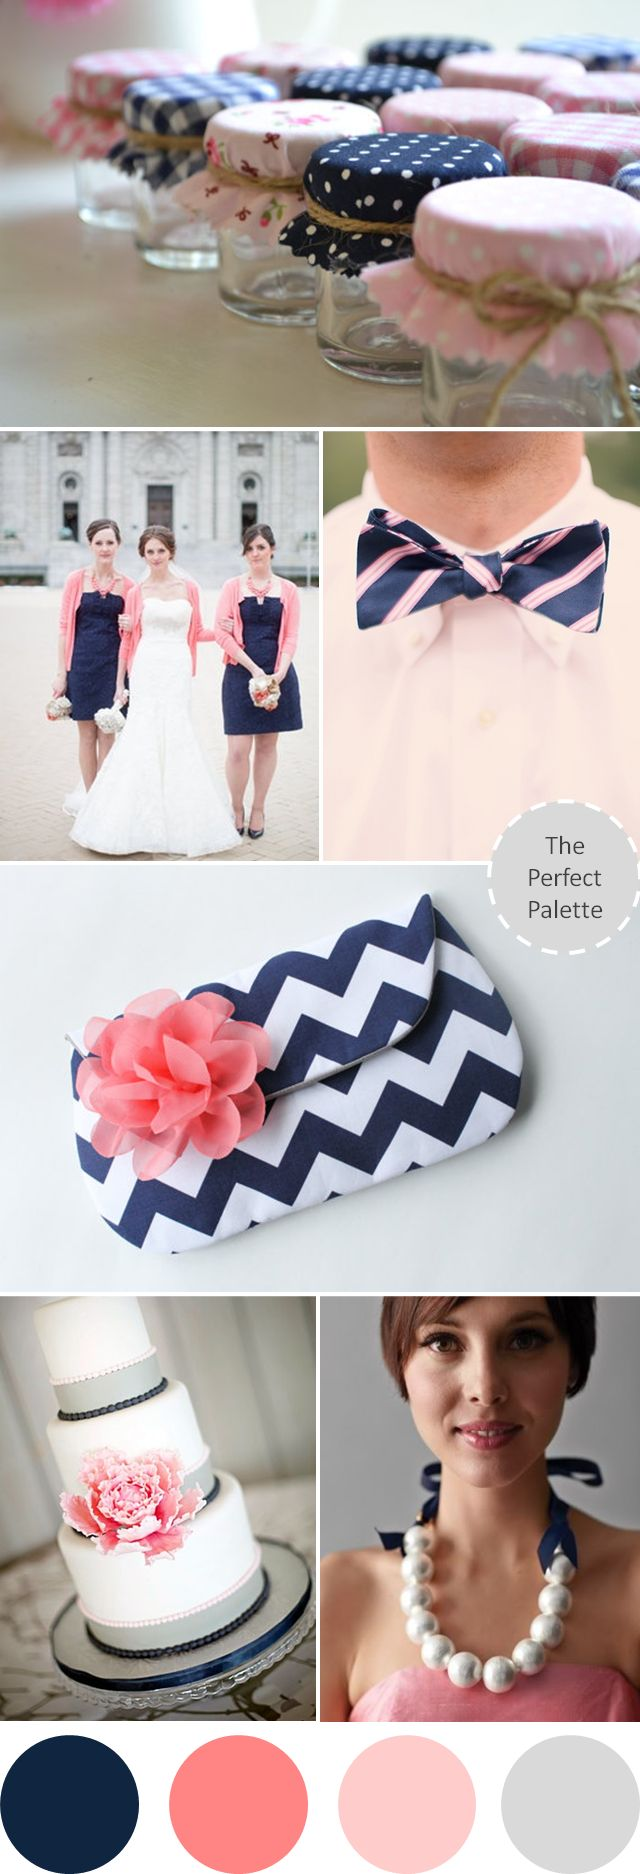 {Wedding Colors I Love}: Navy Blue + Shades of Pink!